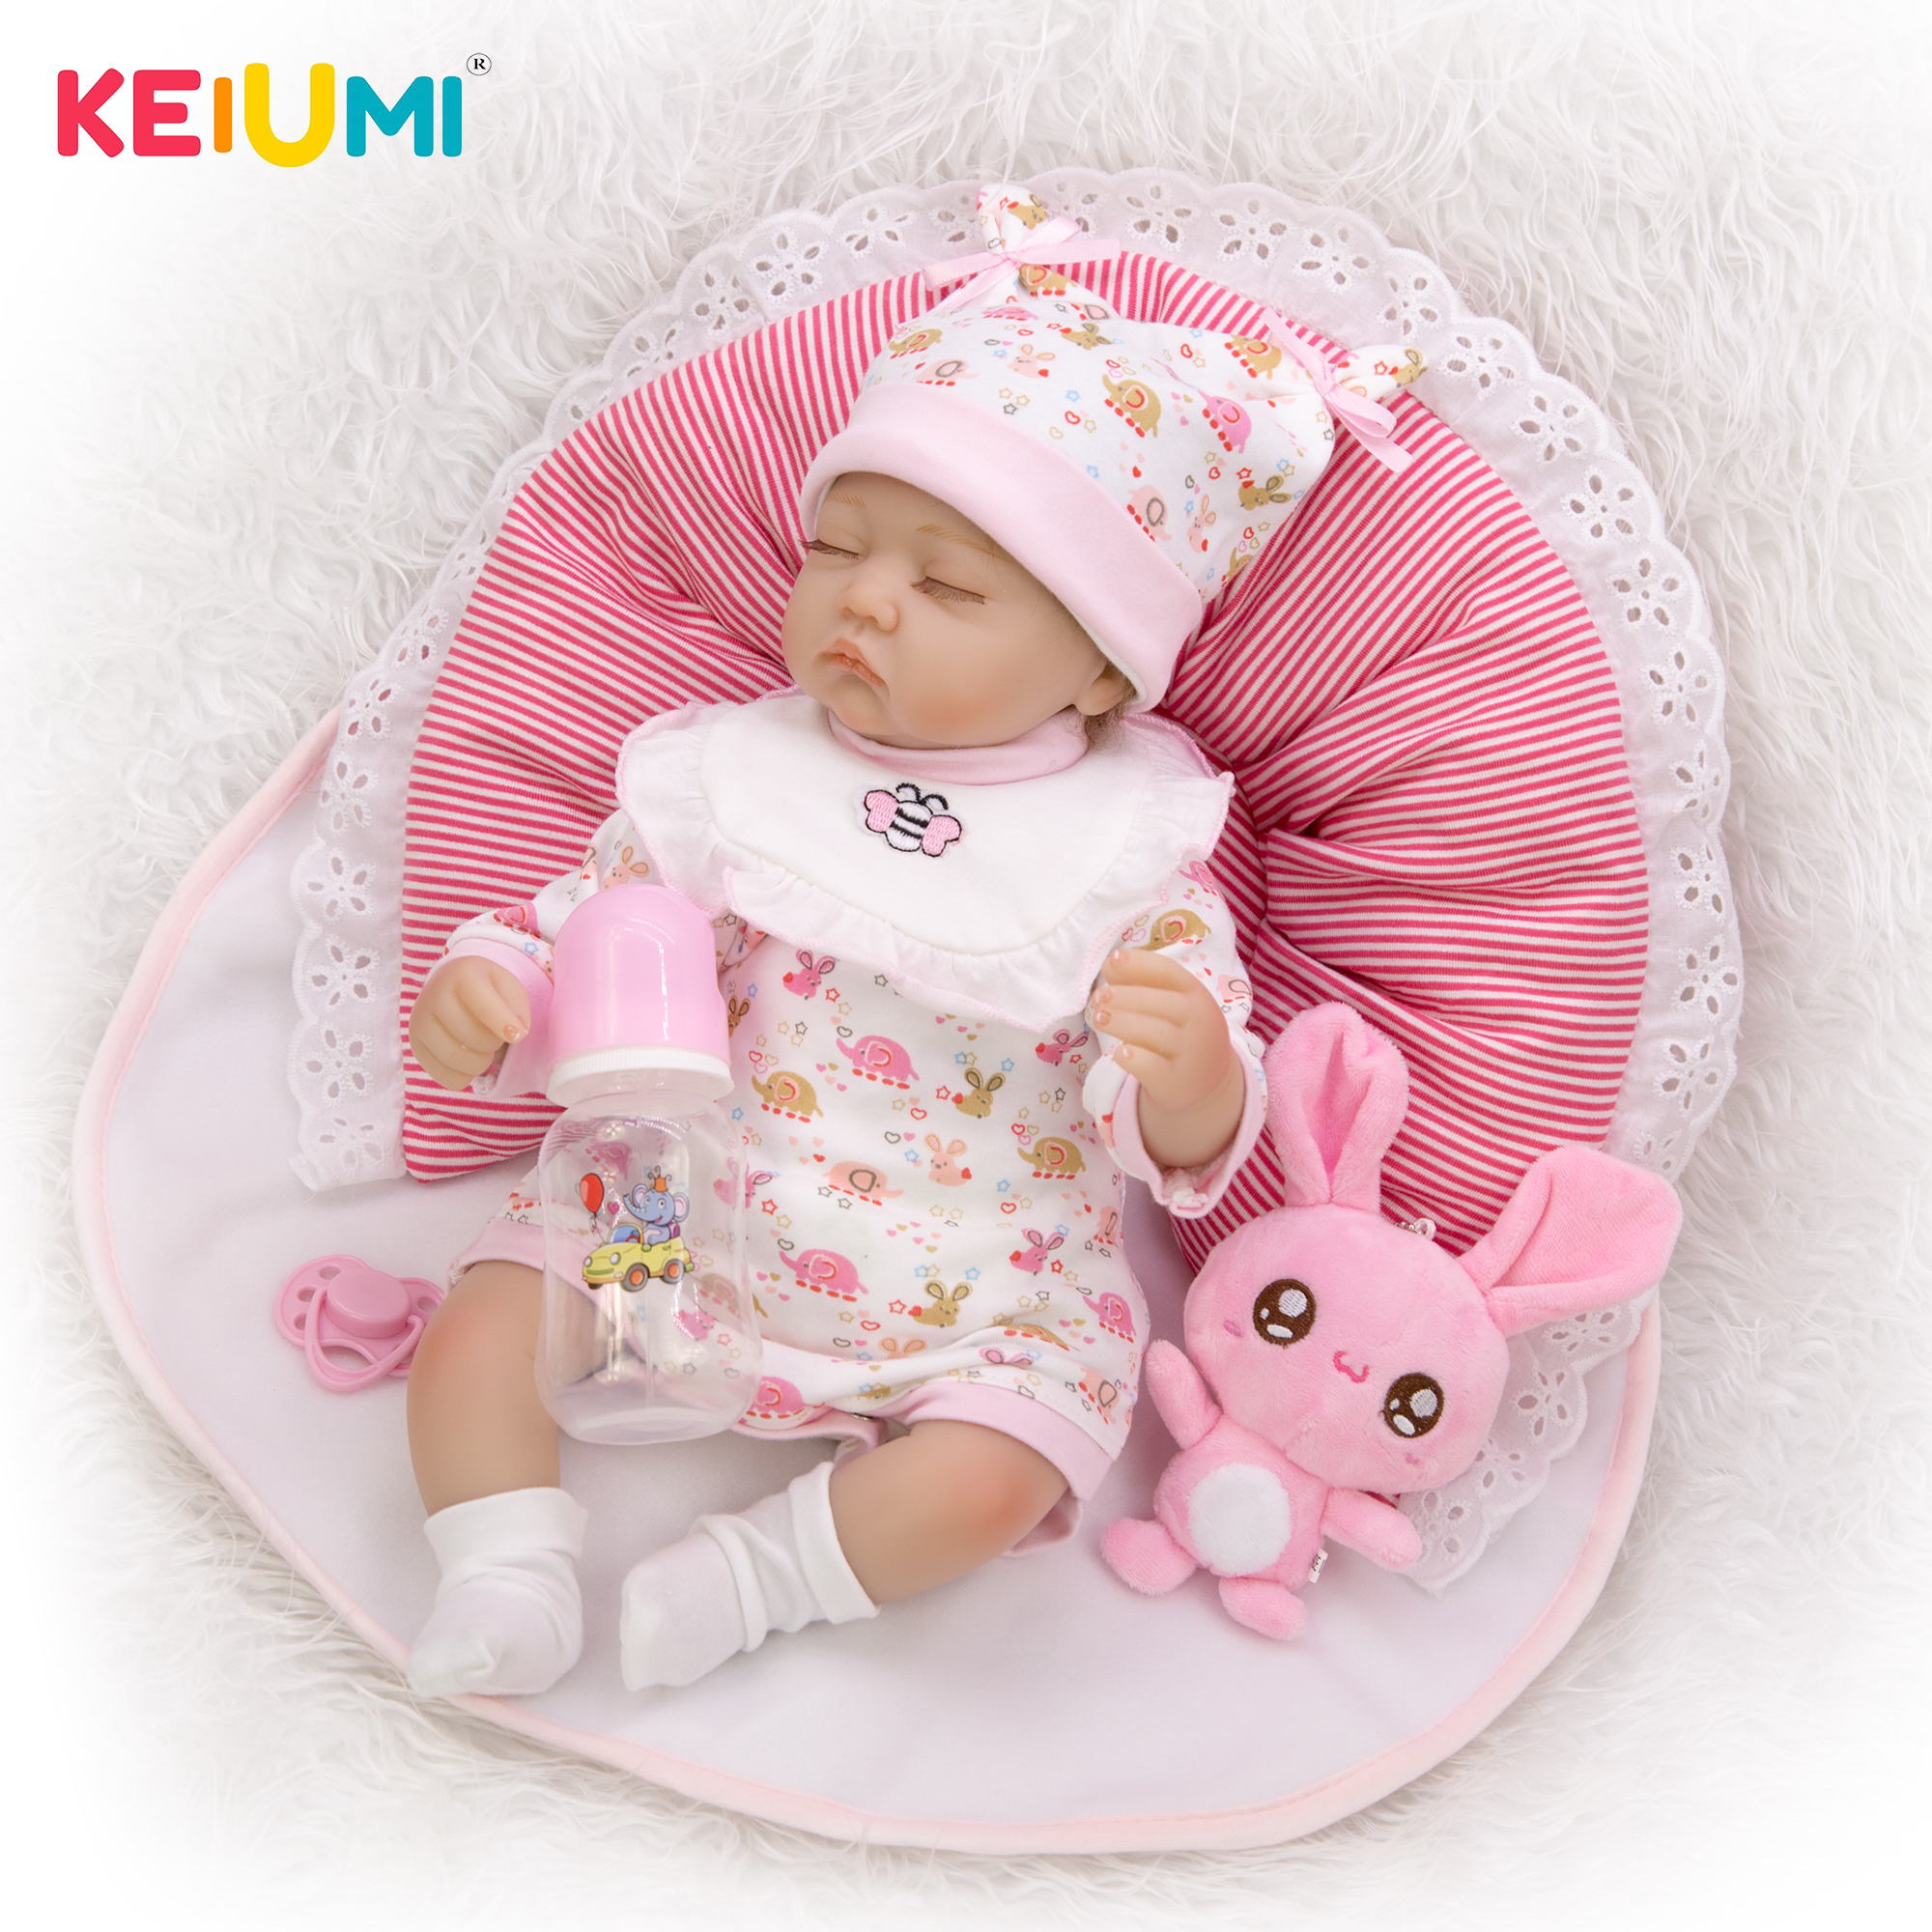 KEIUMI 17'' Silicone Reborn Dolls For XMAS Gifts Closed Eye Cute Doll Baby Reborn 43 cm Birthday Wedding Gifts-in Dolls from Toys & Hobbies    1